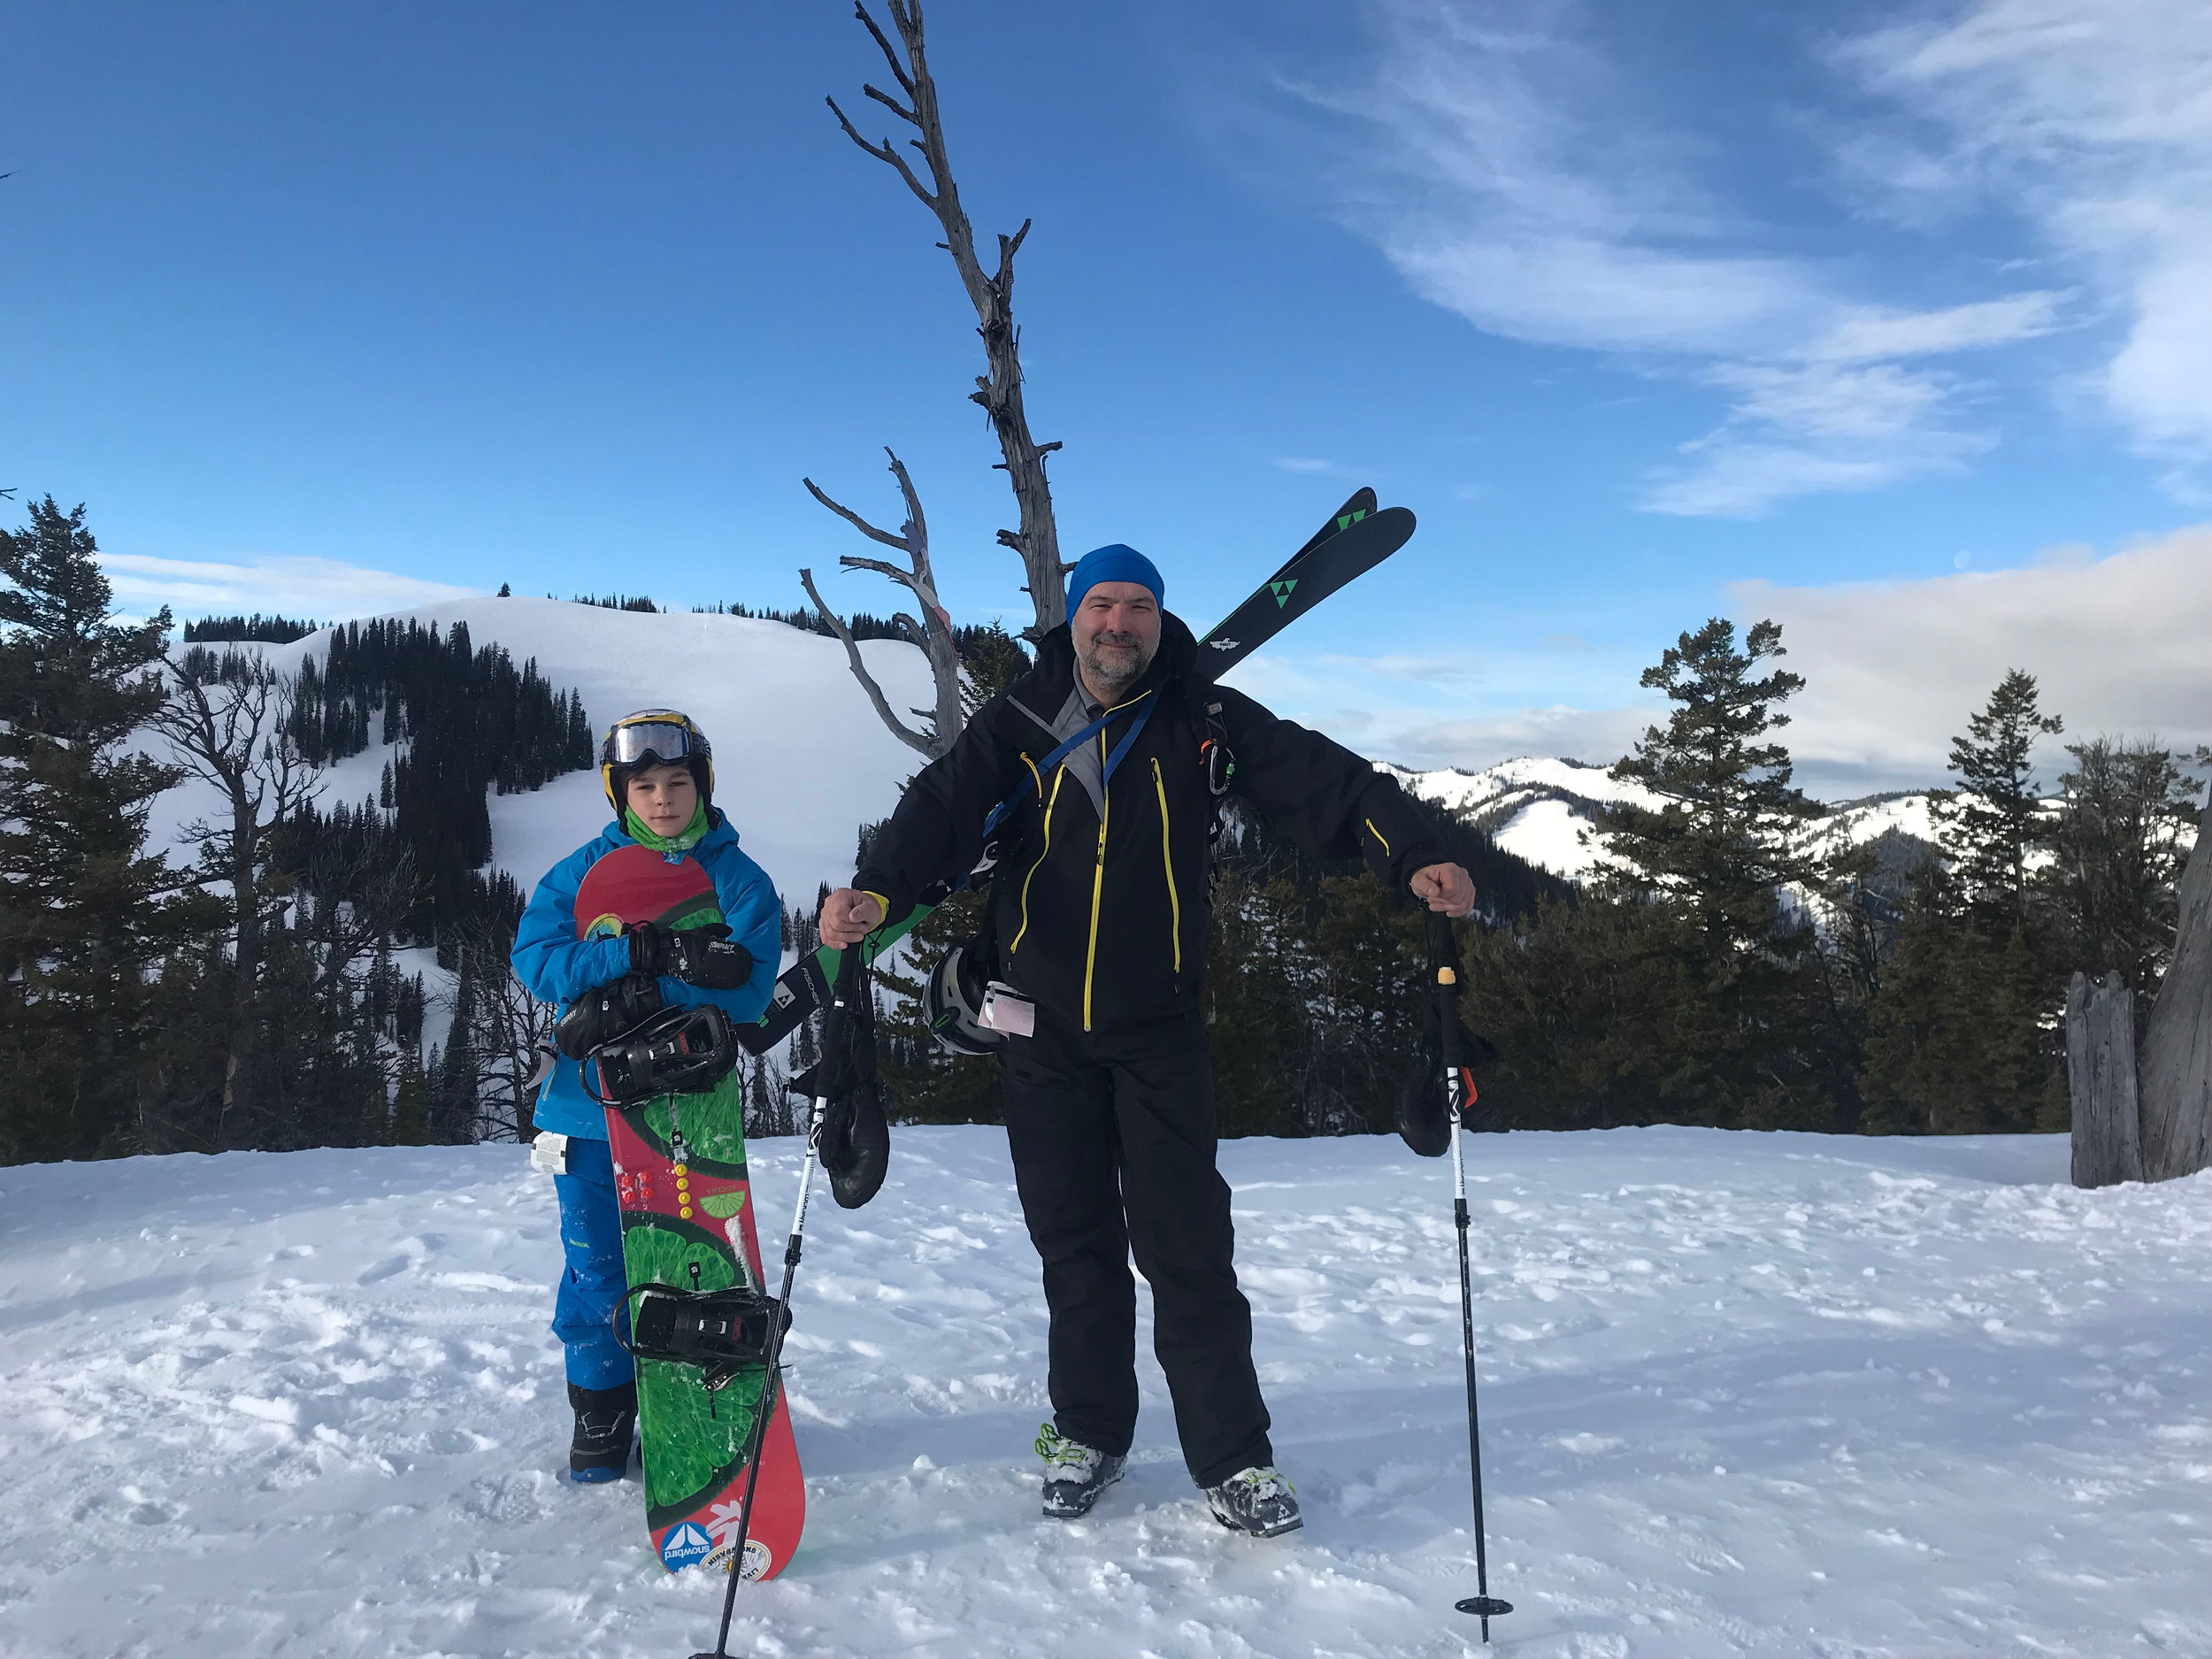 On to the winter sports in Jackson Hole, WY